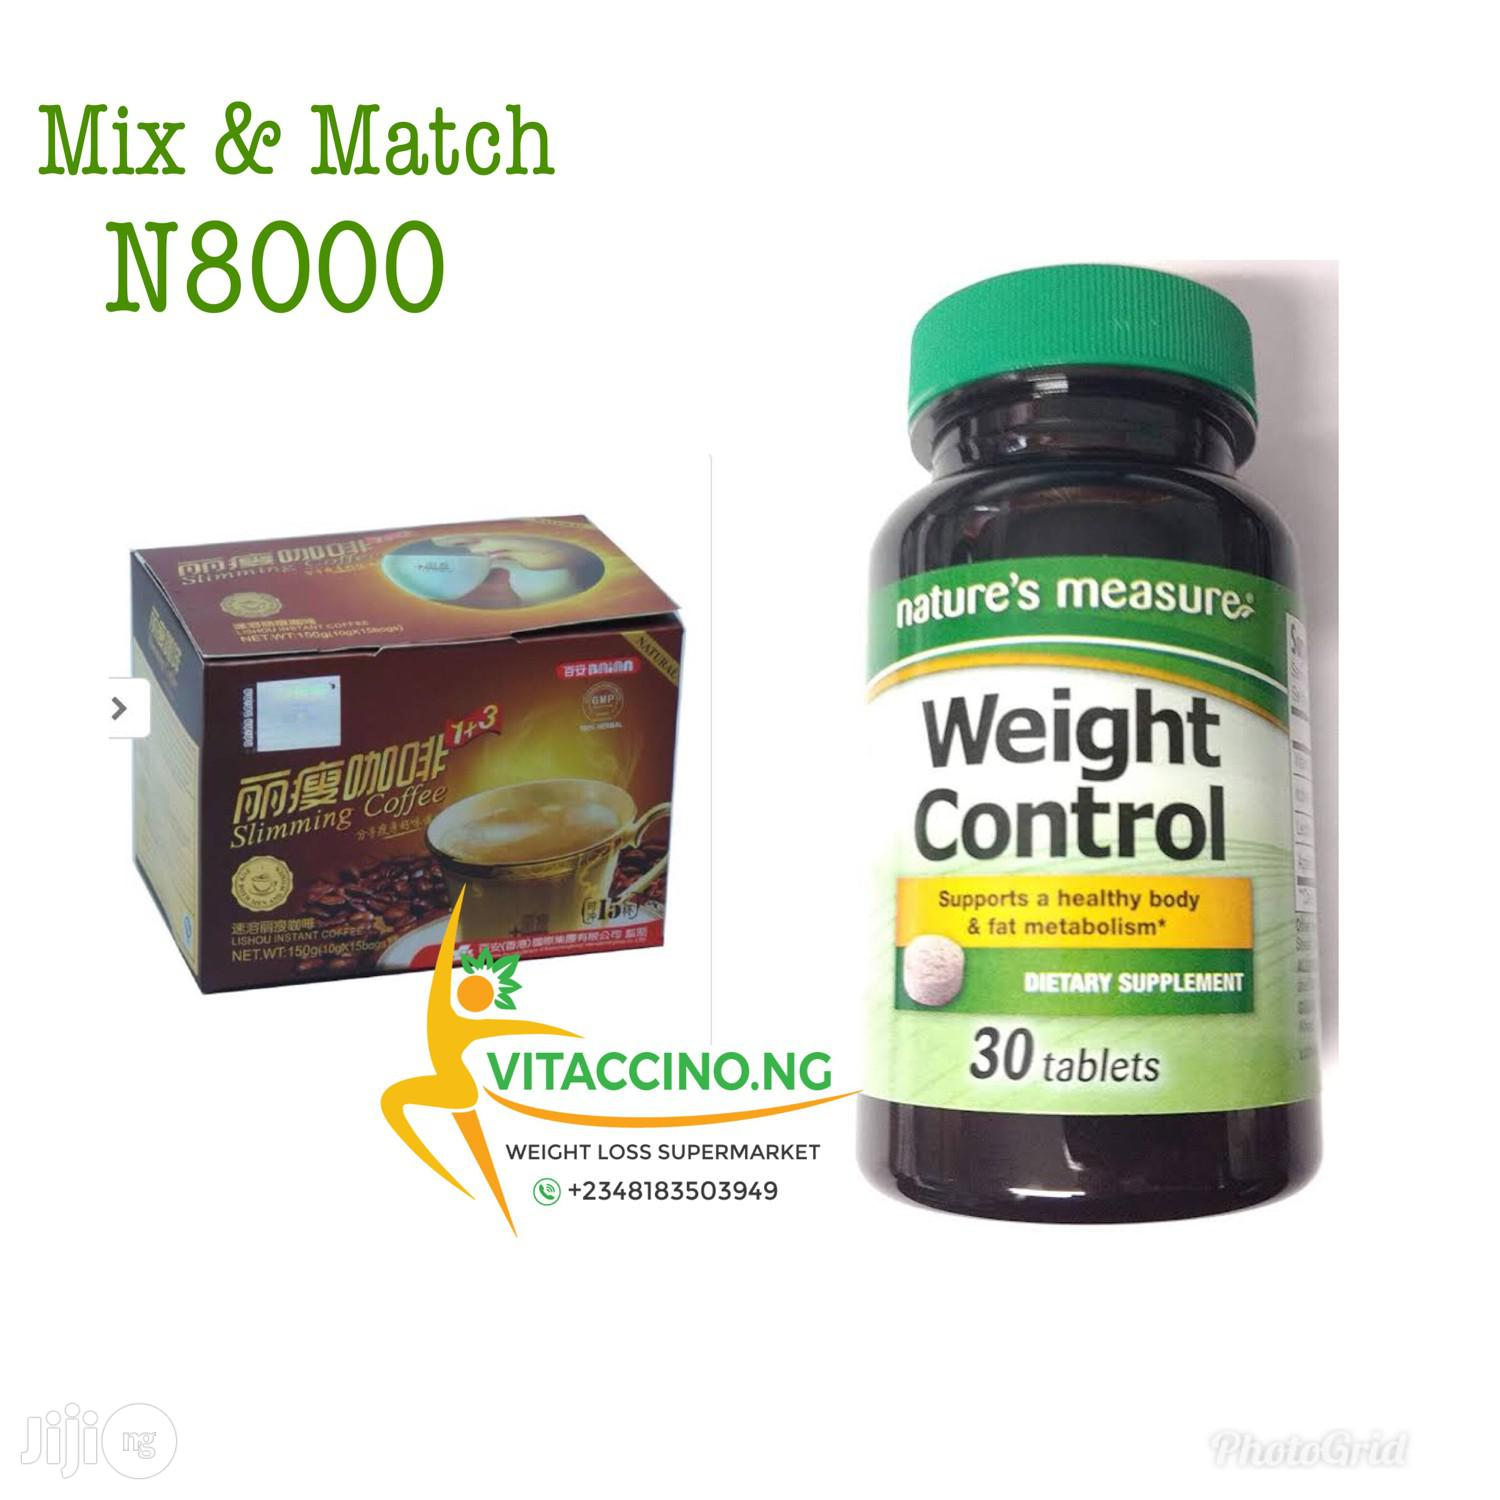 Lishou Slimming Coffee and Measure Weight Pills